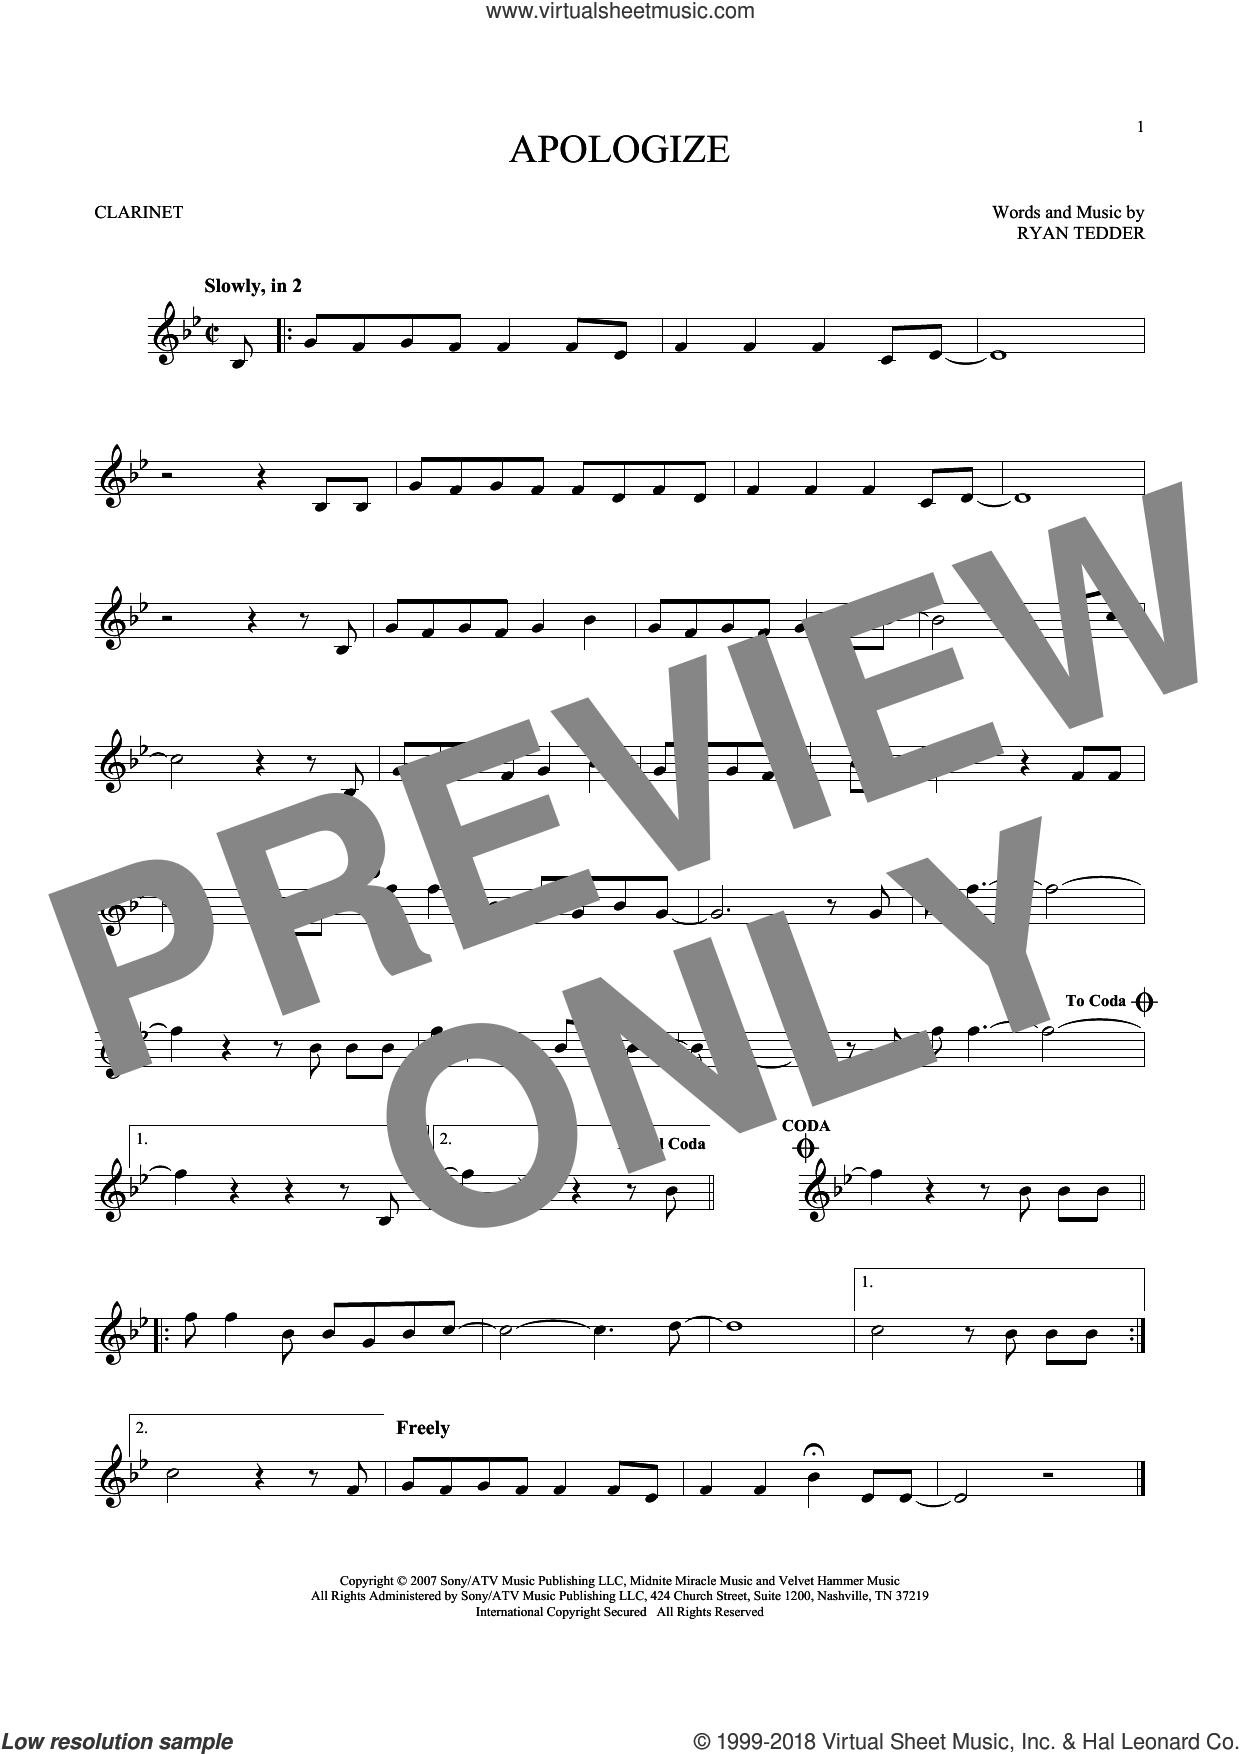 Apologize sheet music for clarinet solo by Timbaland featuring OneRepublic and Ryan Tedder, intermediate skill level